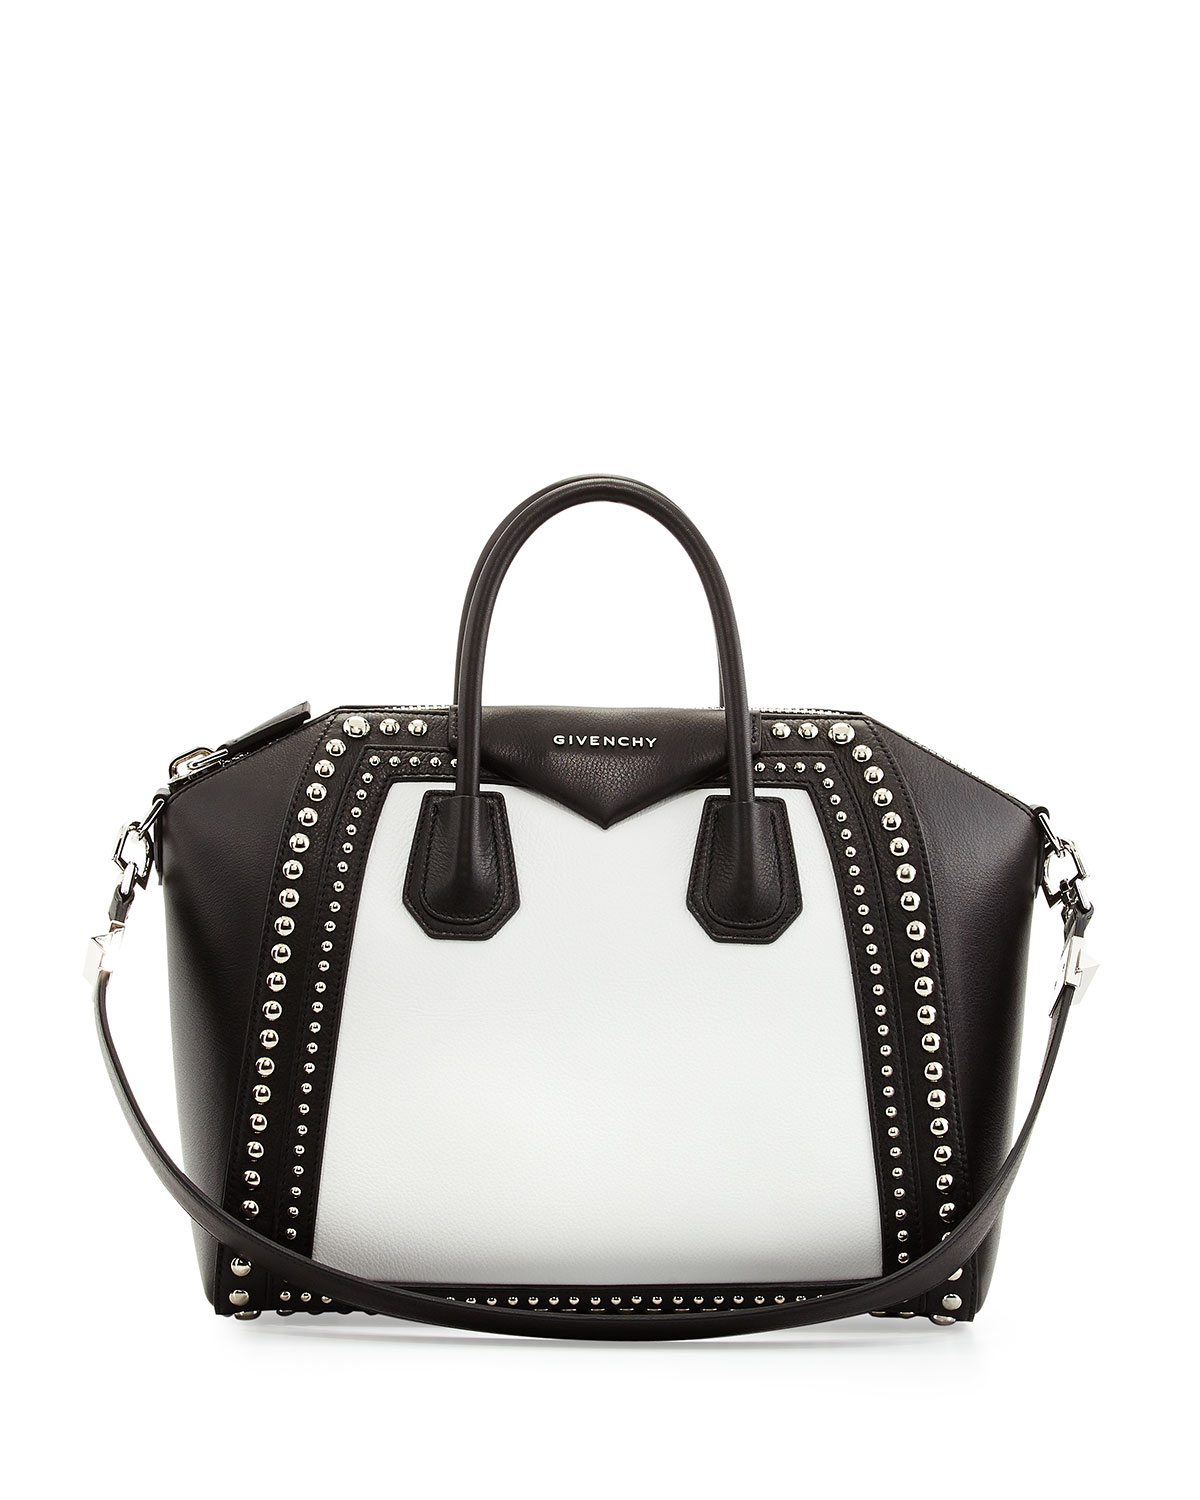 Givenchy Antigona Medium Satchel Bag w Studs f27f1be61d83e